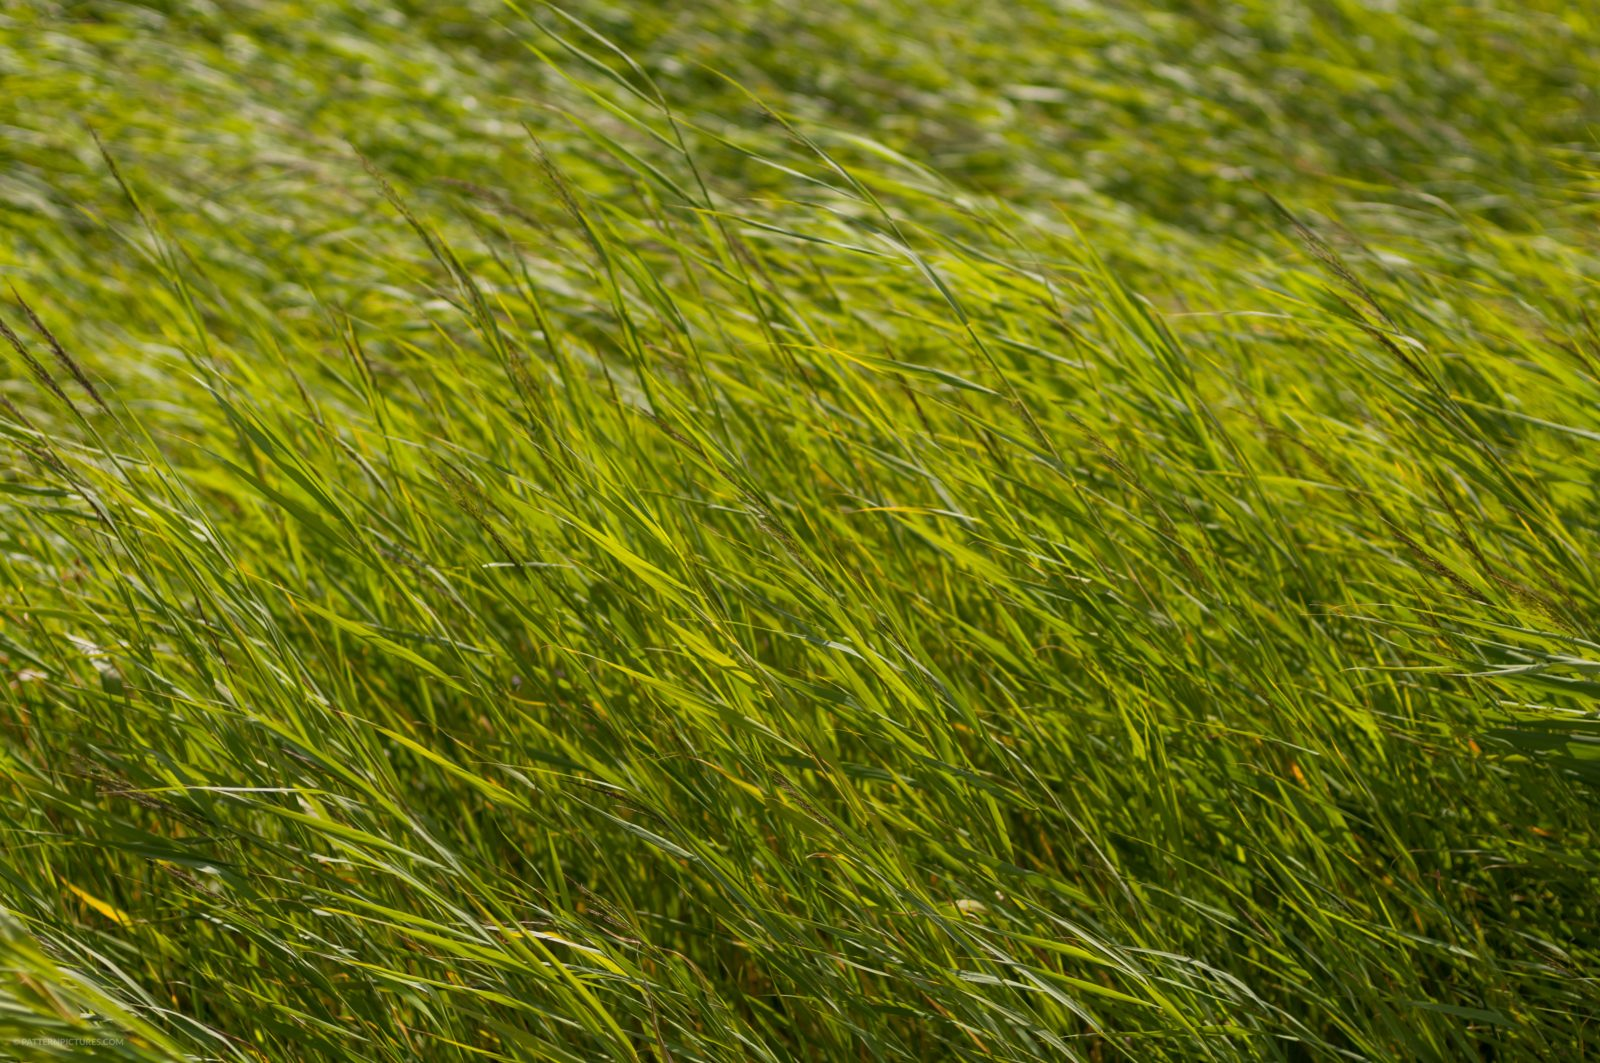 High dark green grass background texture